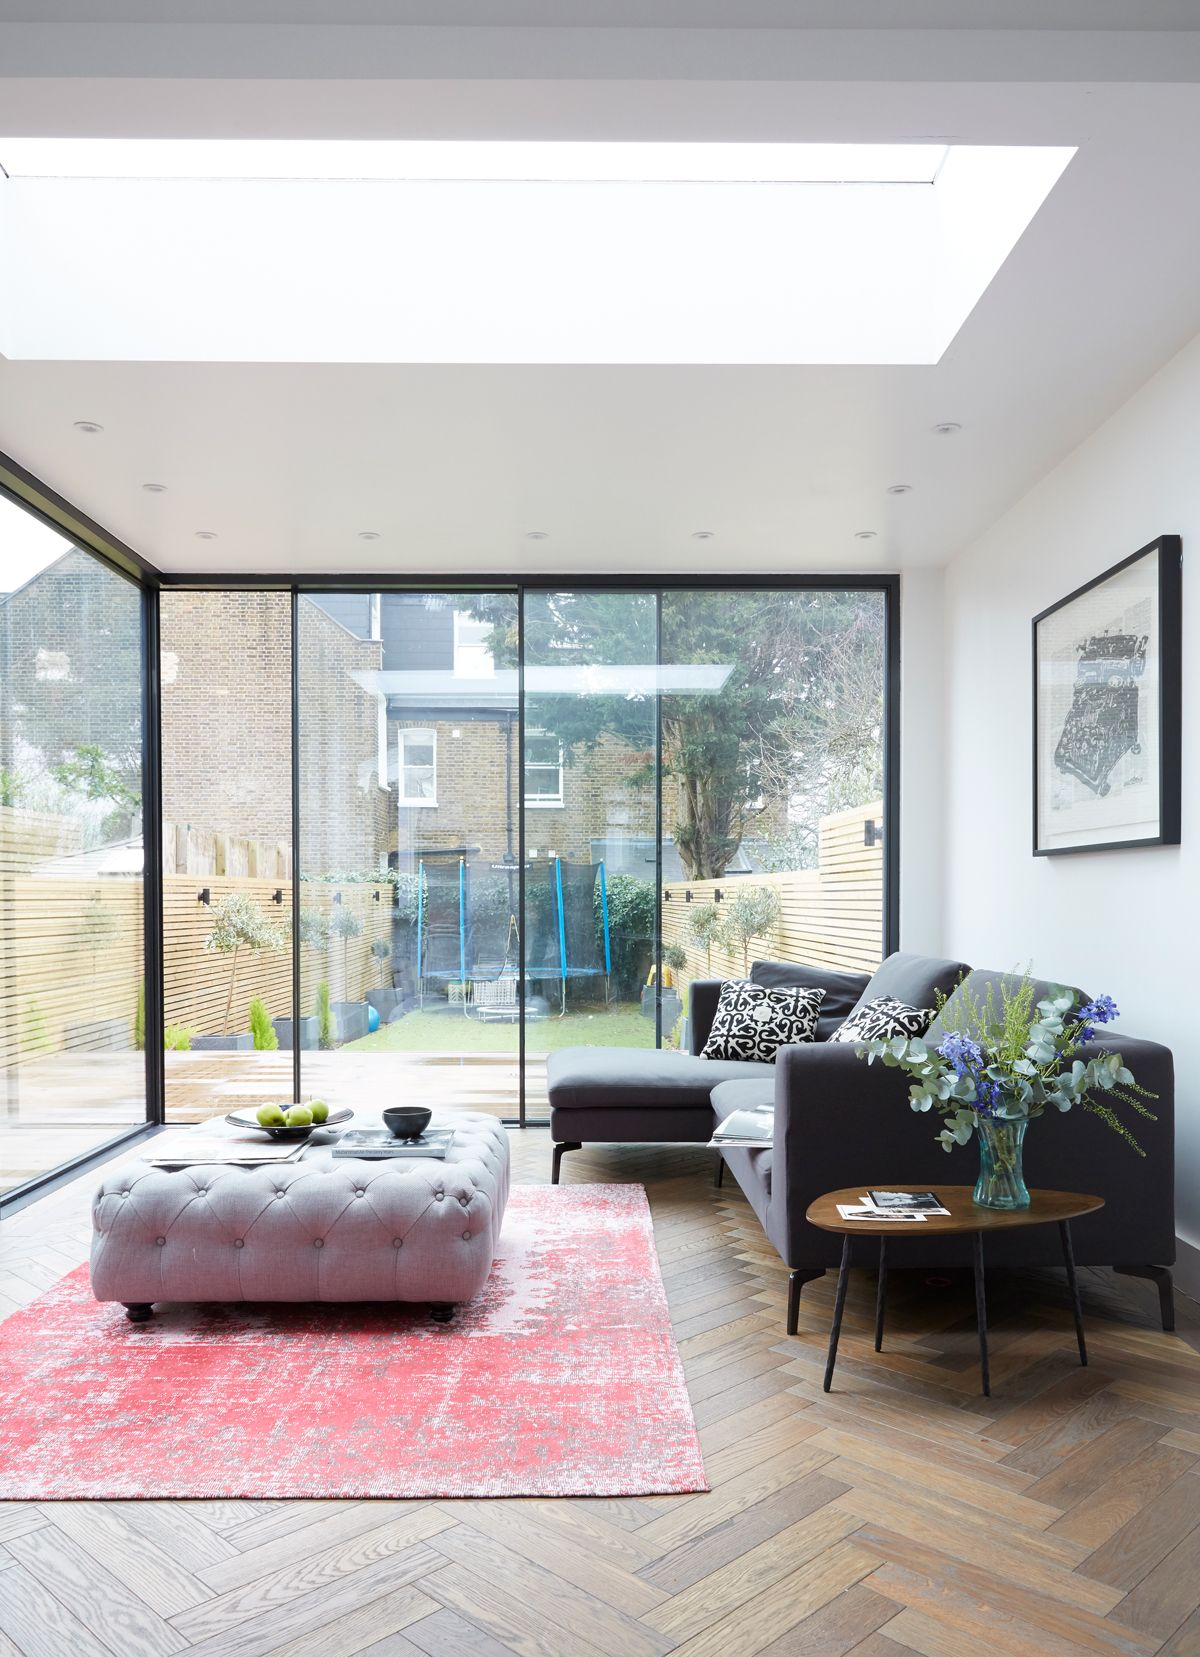 Step inside this chic family home in northwest London